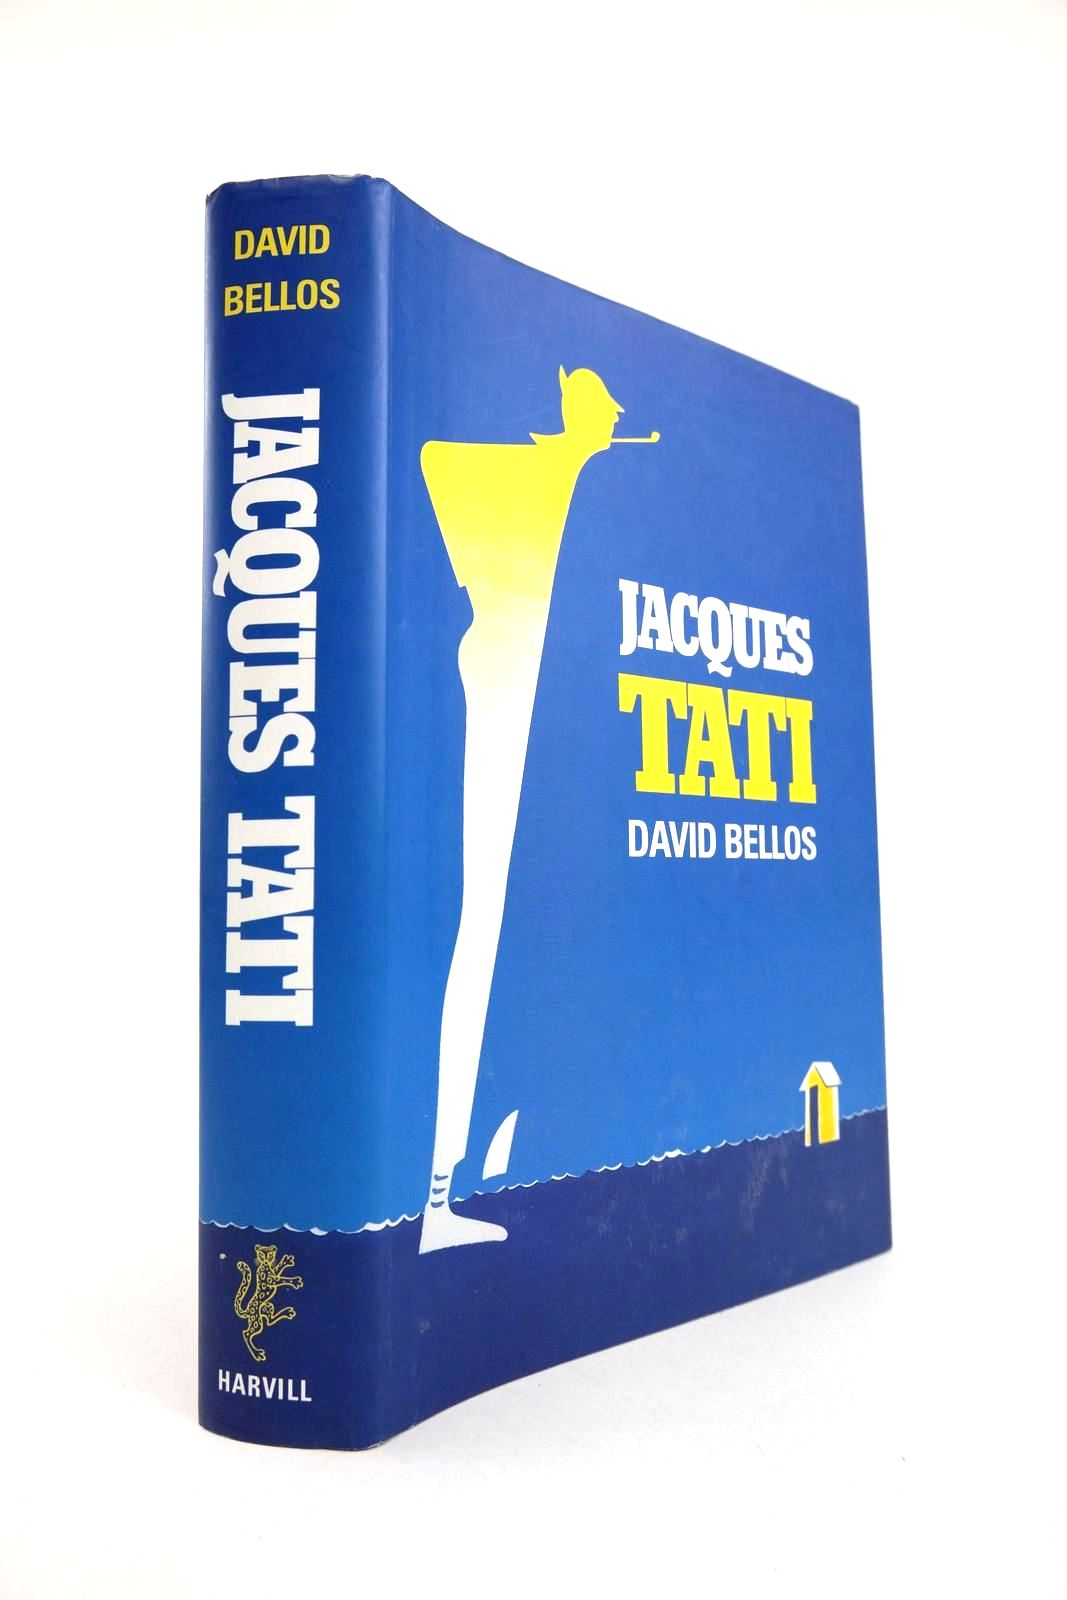 Photo of JACQUES TATI written by Bellos, David published by The Harvill Press (STOCK CODE: 2132528)  for sale by Stella & Rose's Books